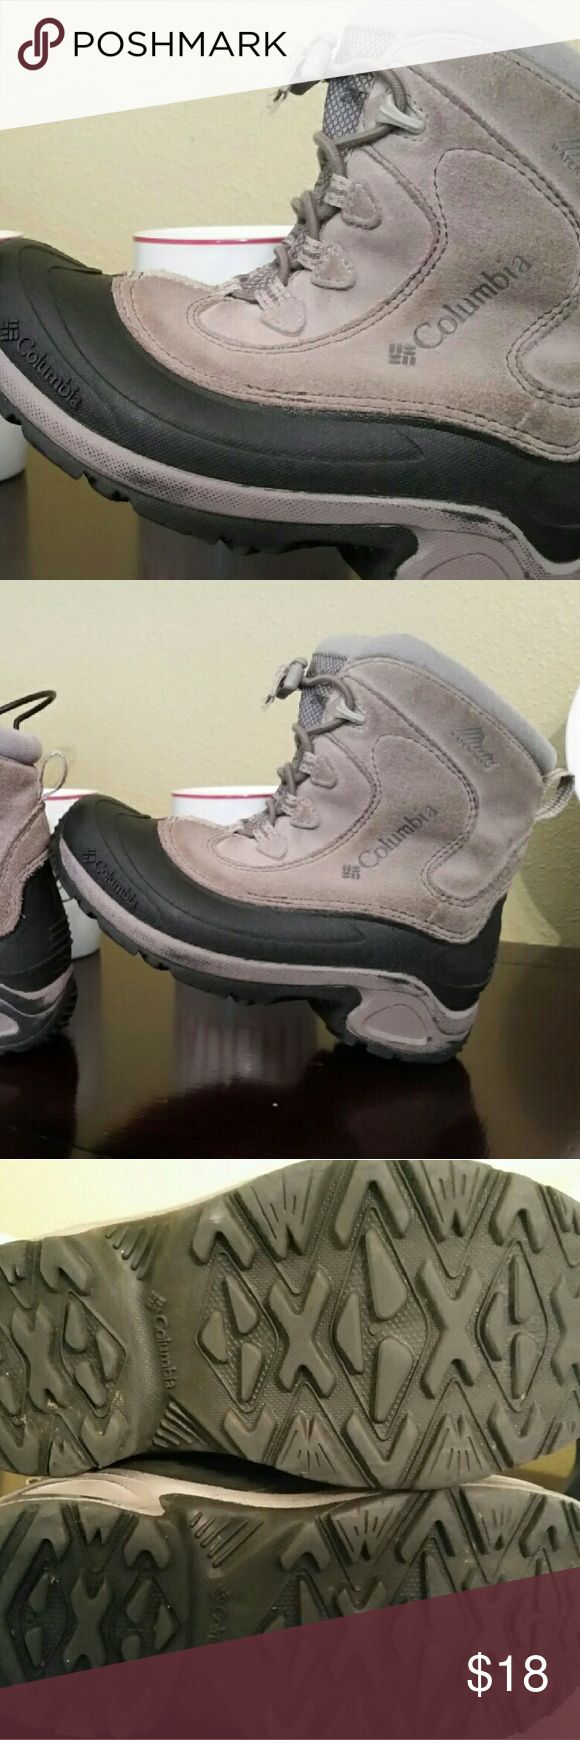 Columbia Sportswear Boys Bugaboo size 3 Leather uppers, waterproof, still has LOTS of life left Keep those cute toes of theirs safe and frost bite free with these! Columbia Shoes Boots